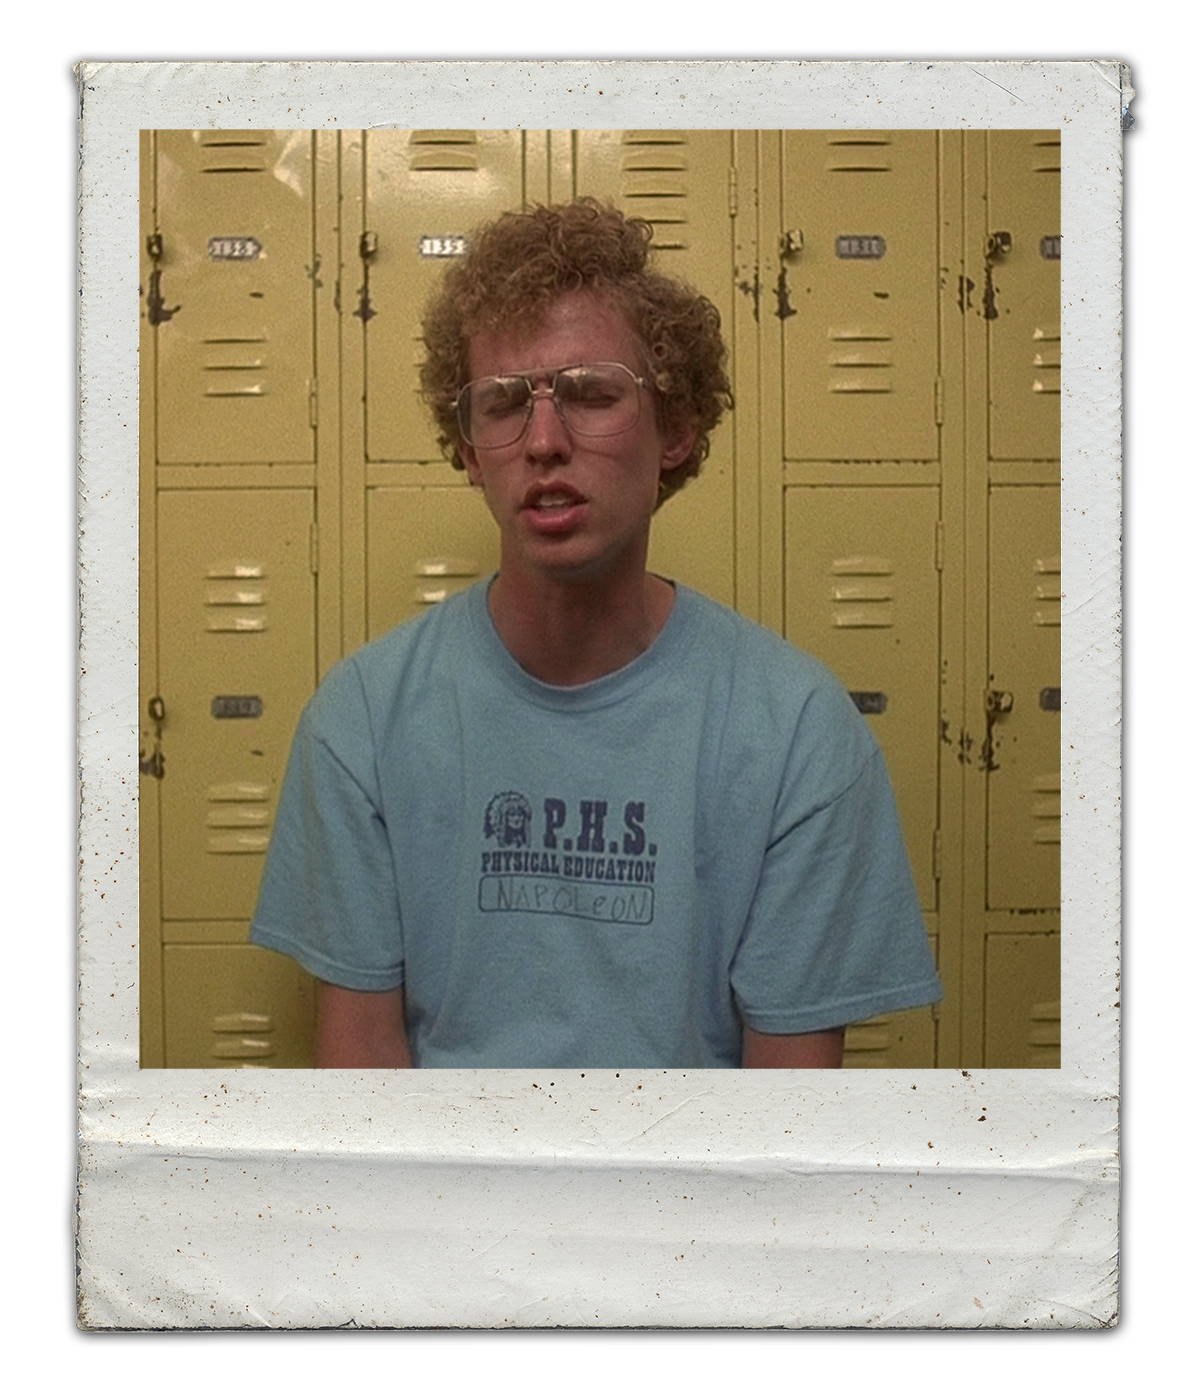 Napoleon Dynamite t shirts from the movie